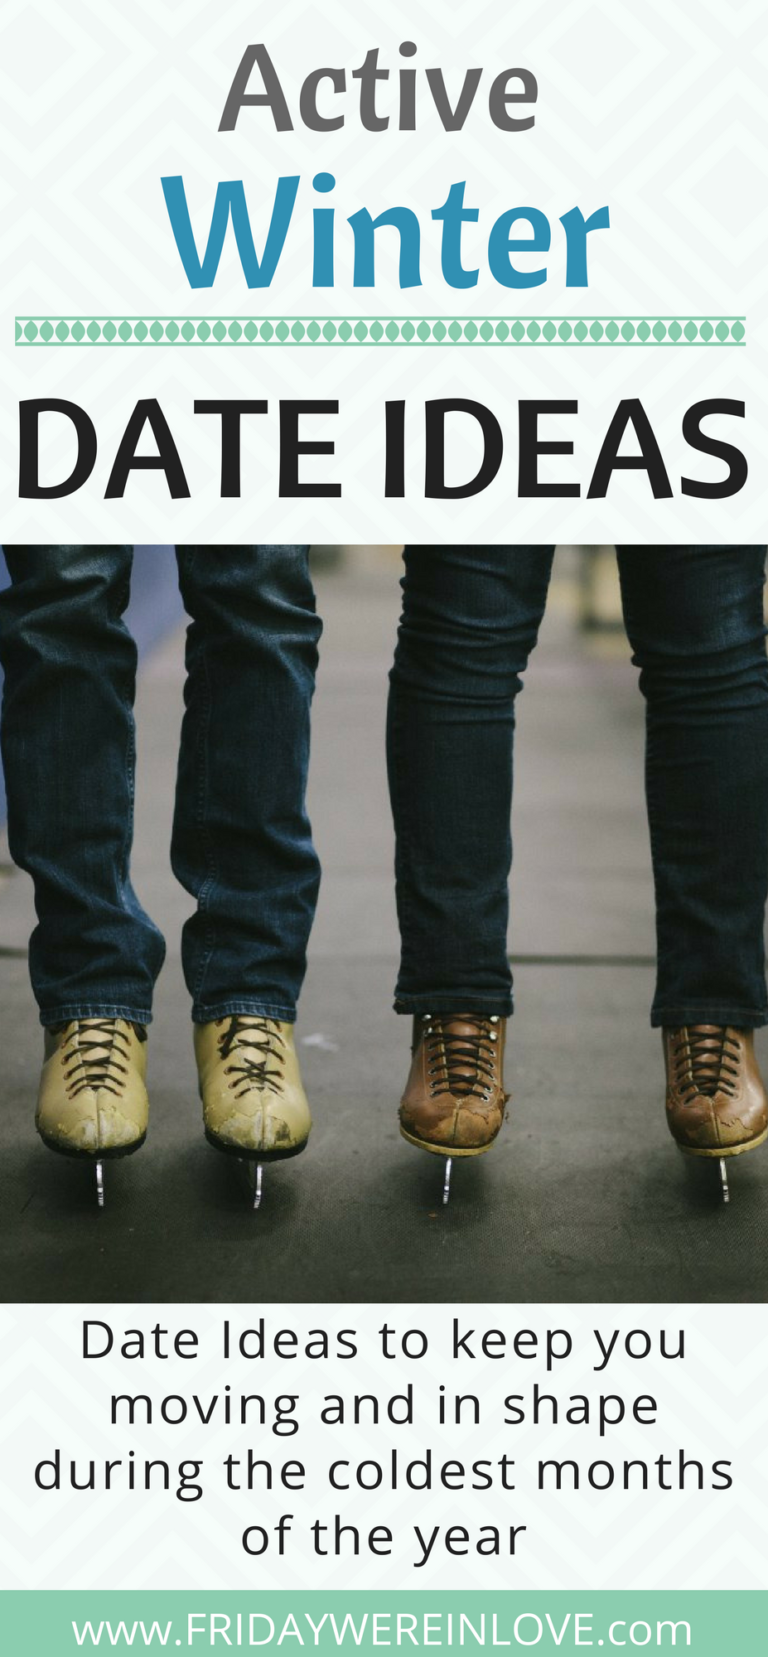 Active dating ideas